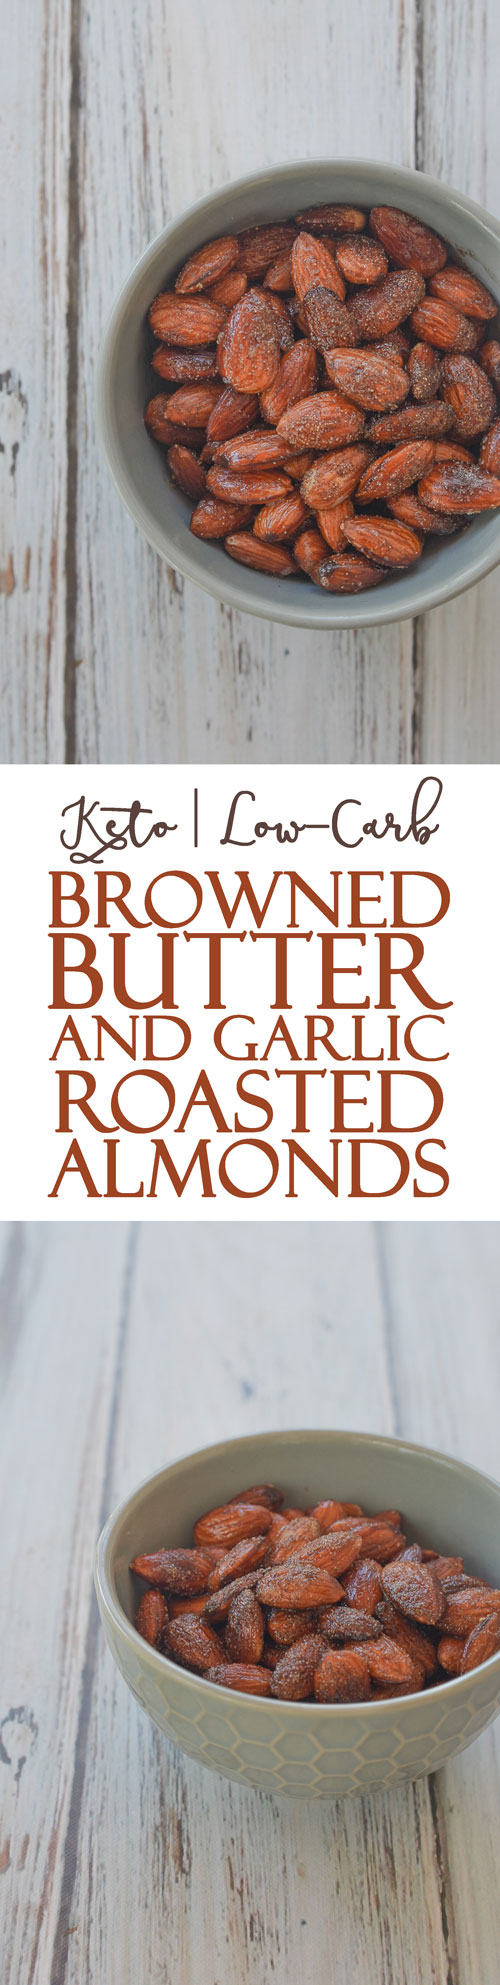 Looking for a quick salty snack? These browned butter and garlic roasted almonds fit the bill perfectly. Keto, low-carb, Paleo, dairy-free, soy-free.